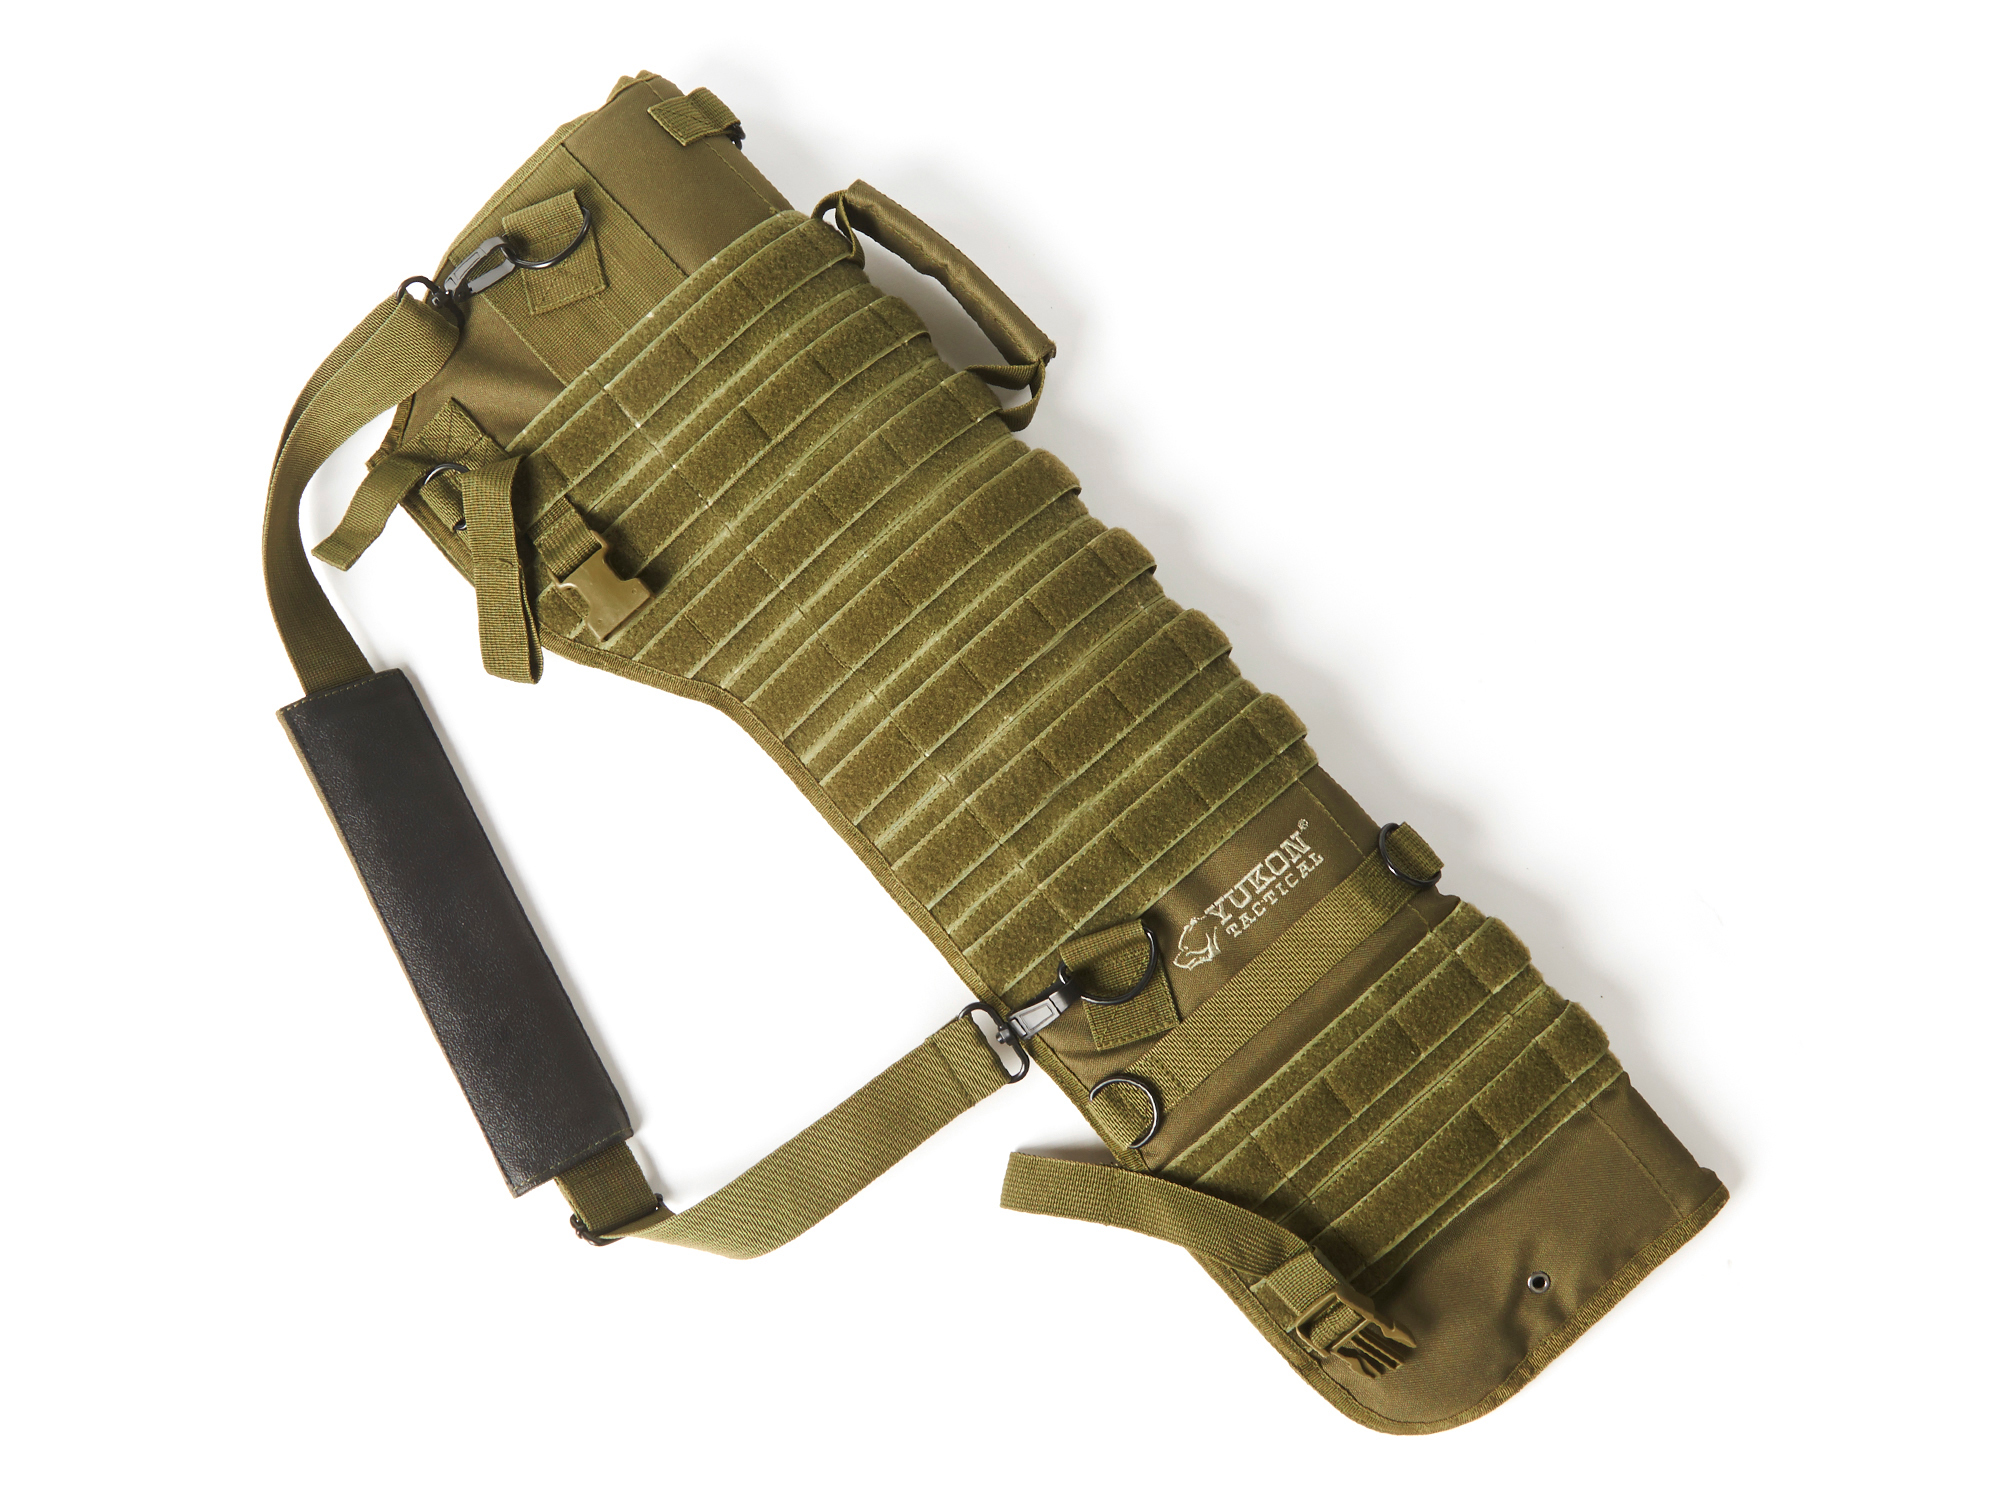 On foot with your pellet rifle - how do you carry it